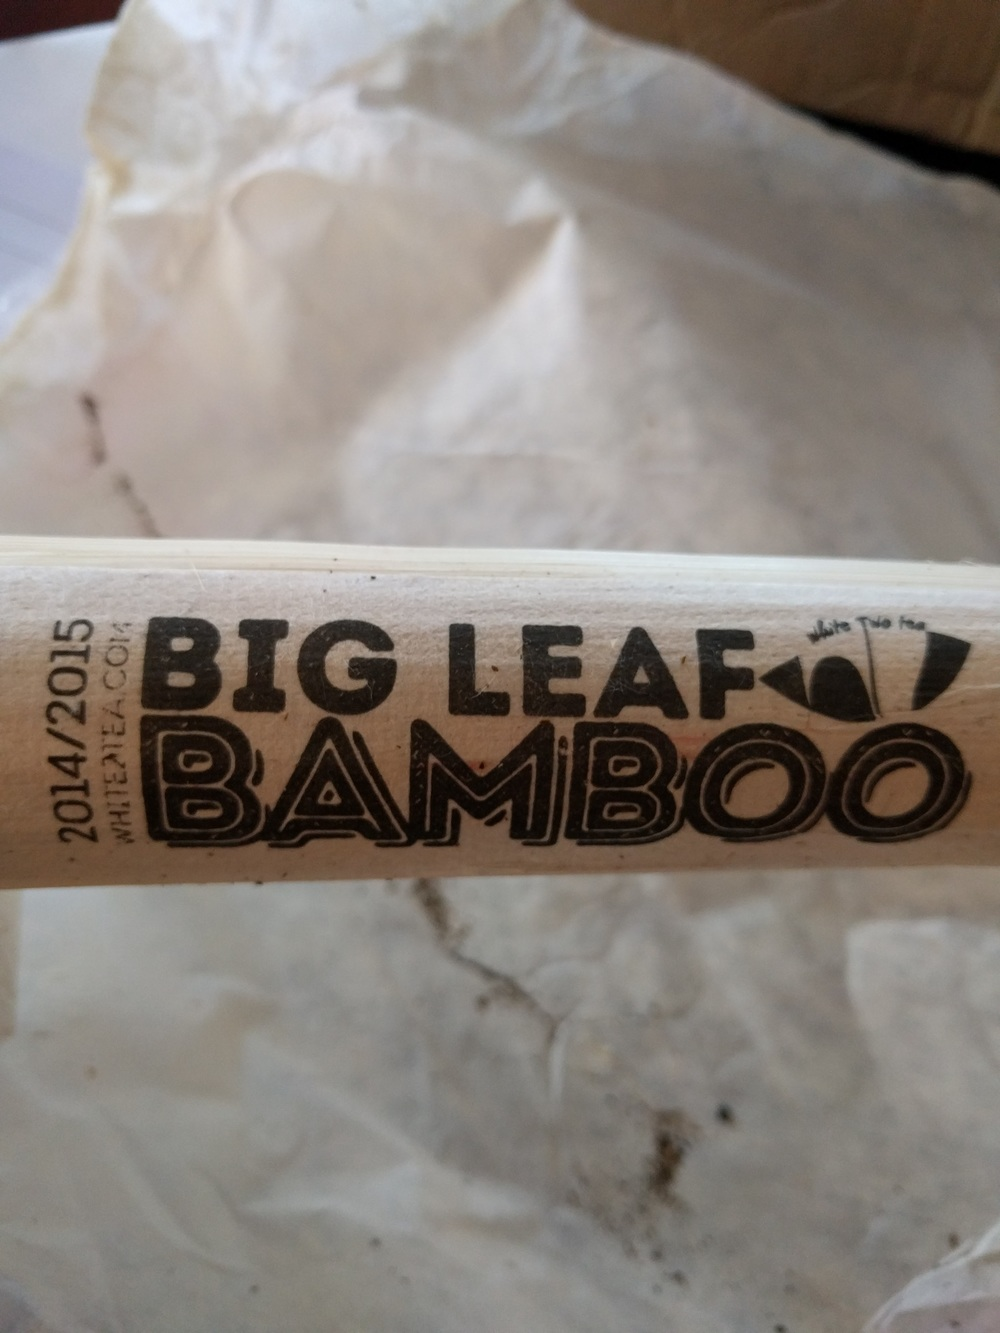 Big Leaf Bamboo, and it's nicer and more tame version  Midwest Nice , are both shaved and split bamboo sections. This packaging is great and is really fun to prepare for other people as something different.